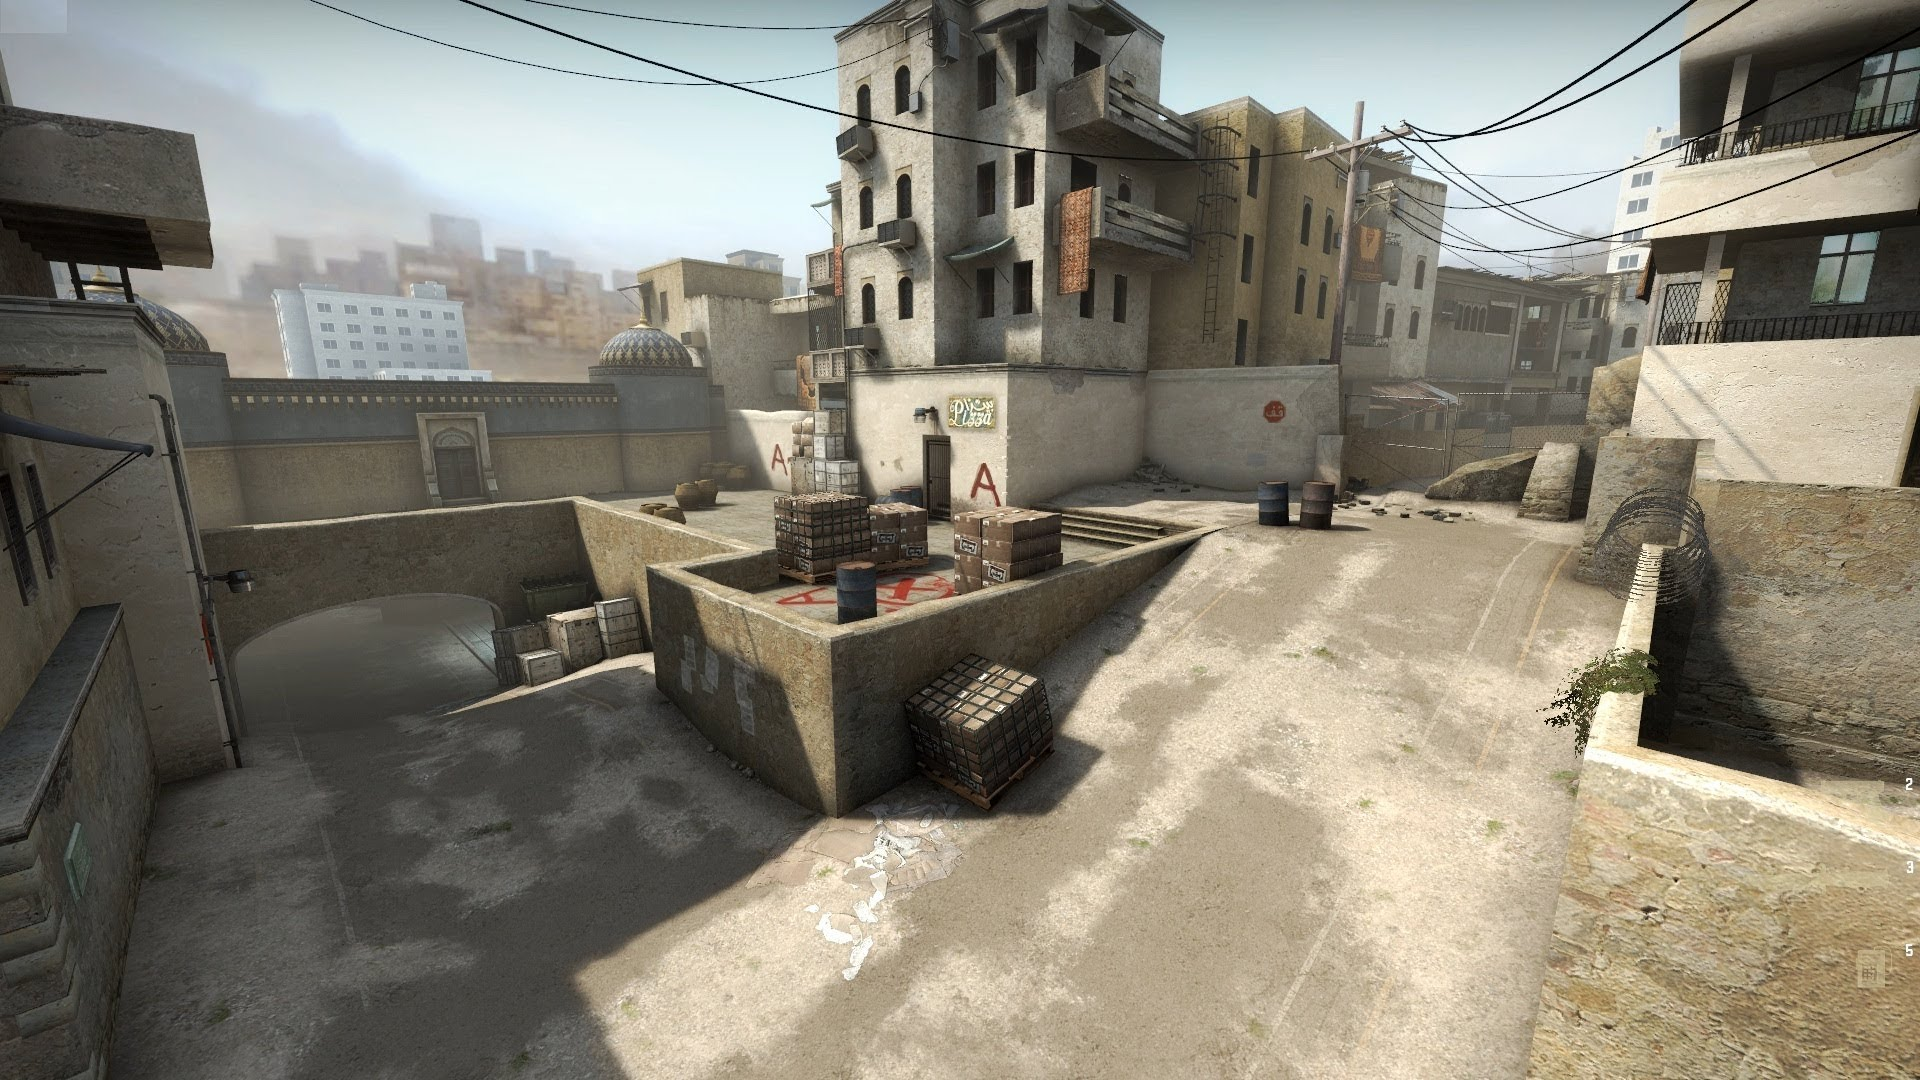 56+] Dust 2 CS GO Wallpaper on WallpaperSafari Dust Map on dust bowl, counter strike de dust map, aztec map, the dust borderlands map, dust bunny, dust devil, dust storm in us map of region, italy map, dust of snow, cs go dust map, storm weather map,